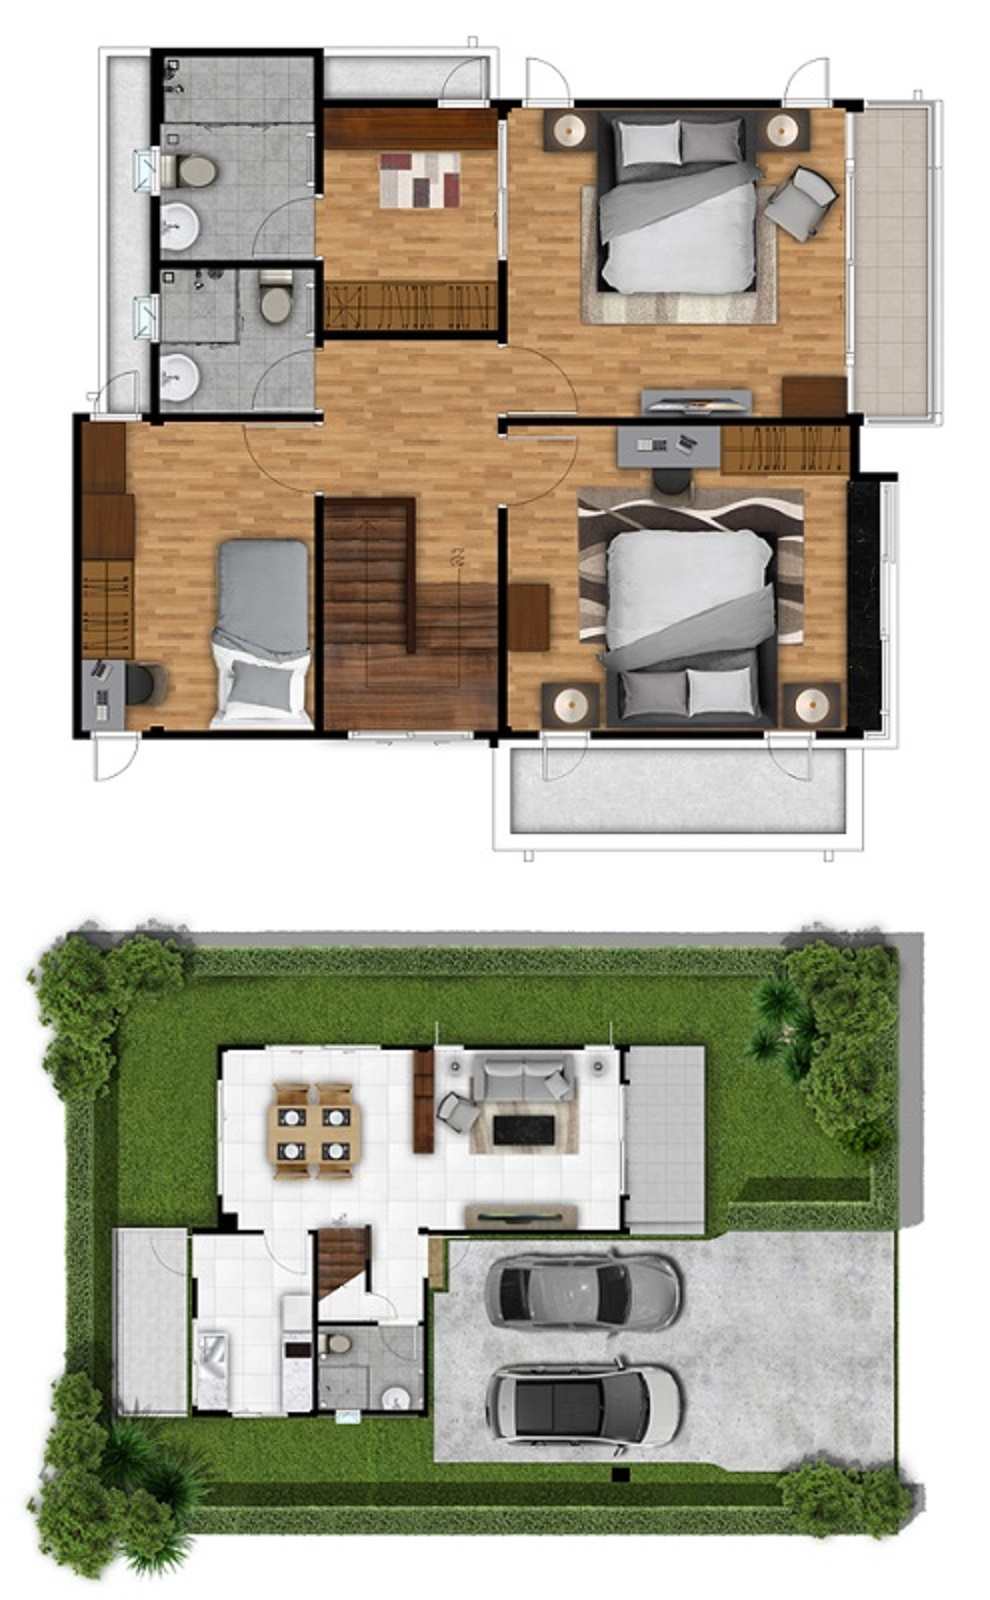 150 Sqm Home design Plans with 3 bedrooms - House Plans 3D